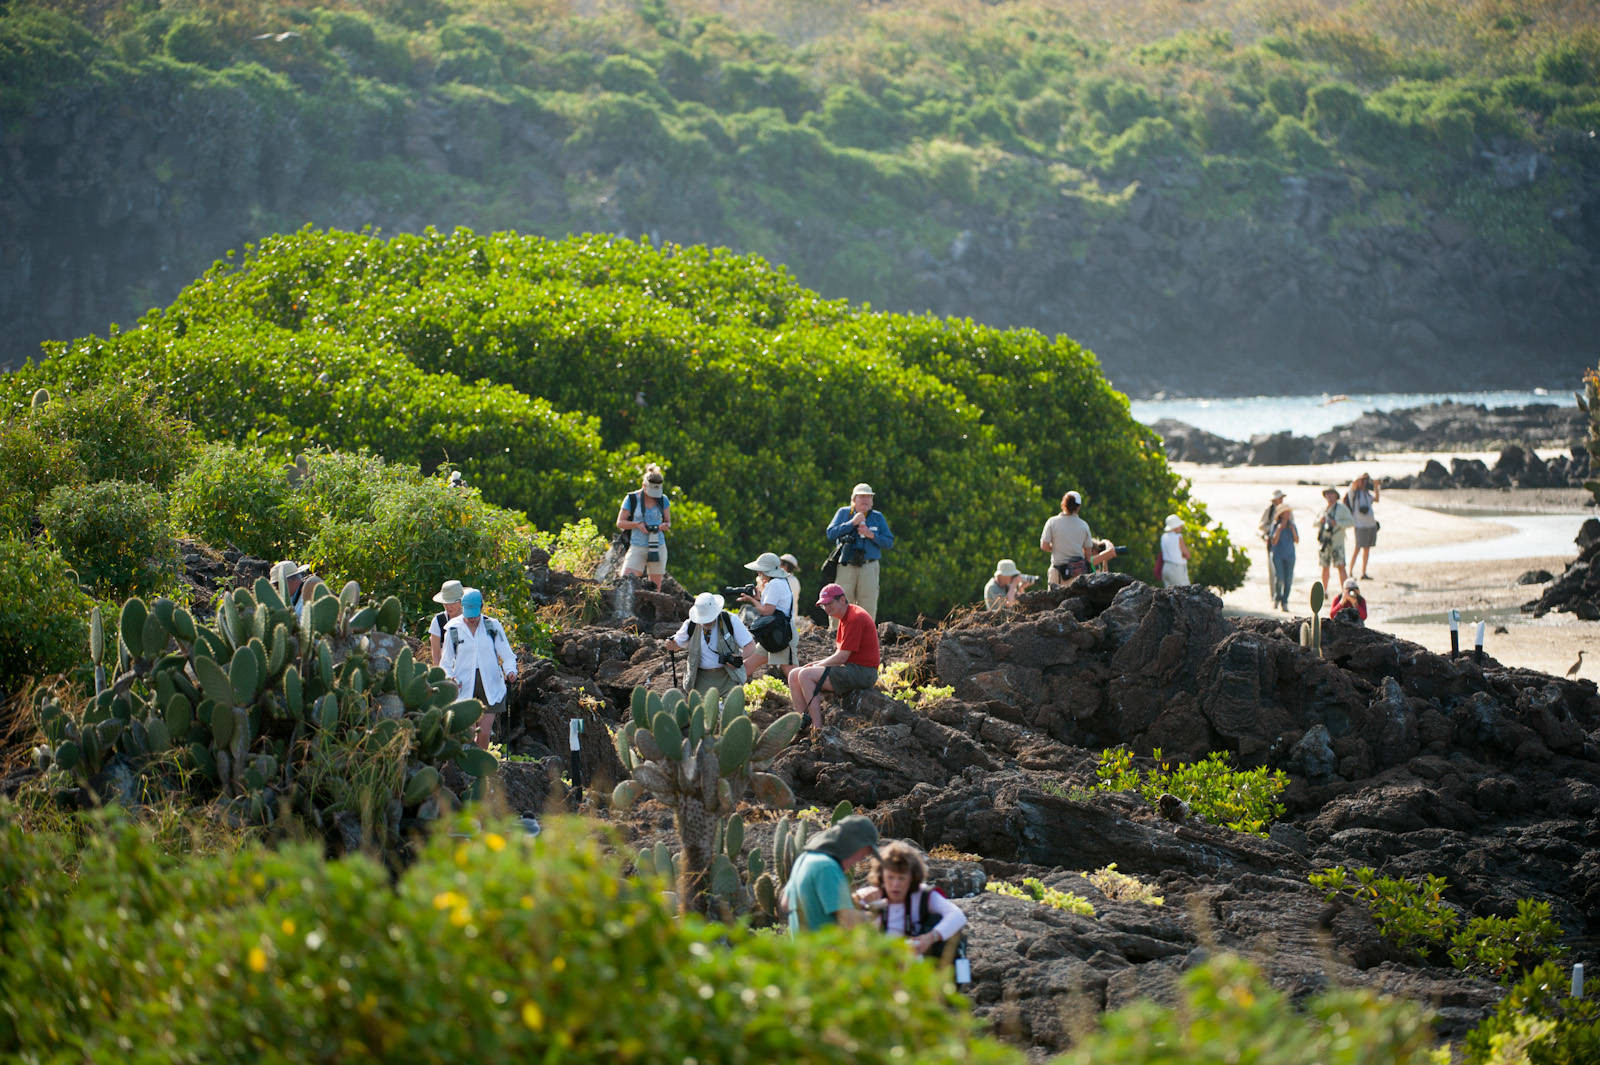 Photo: Tourists walk along a wildlife viewing path along the shore of Tower Island in Galapagos National Park.